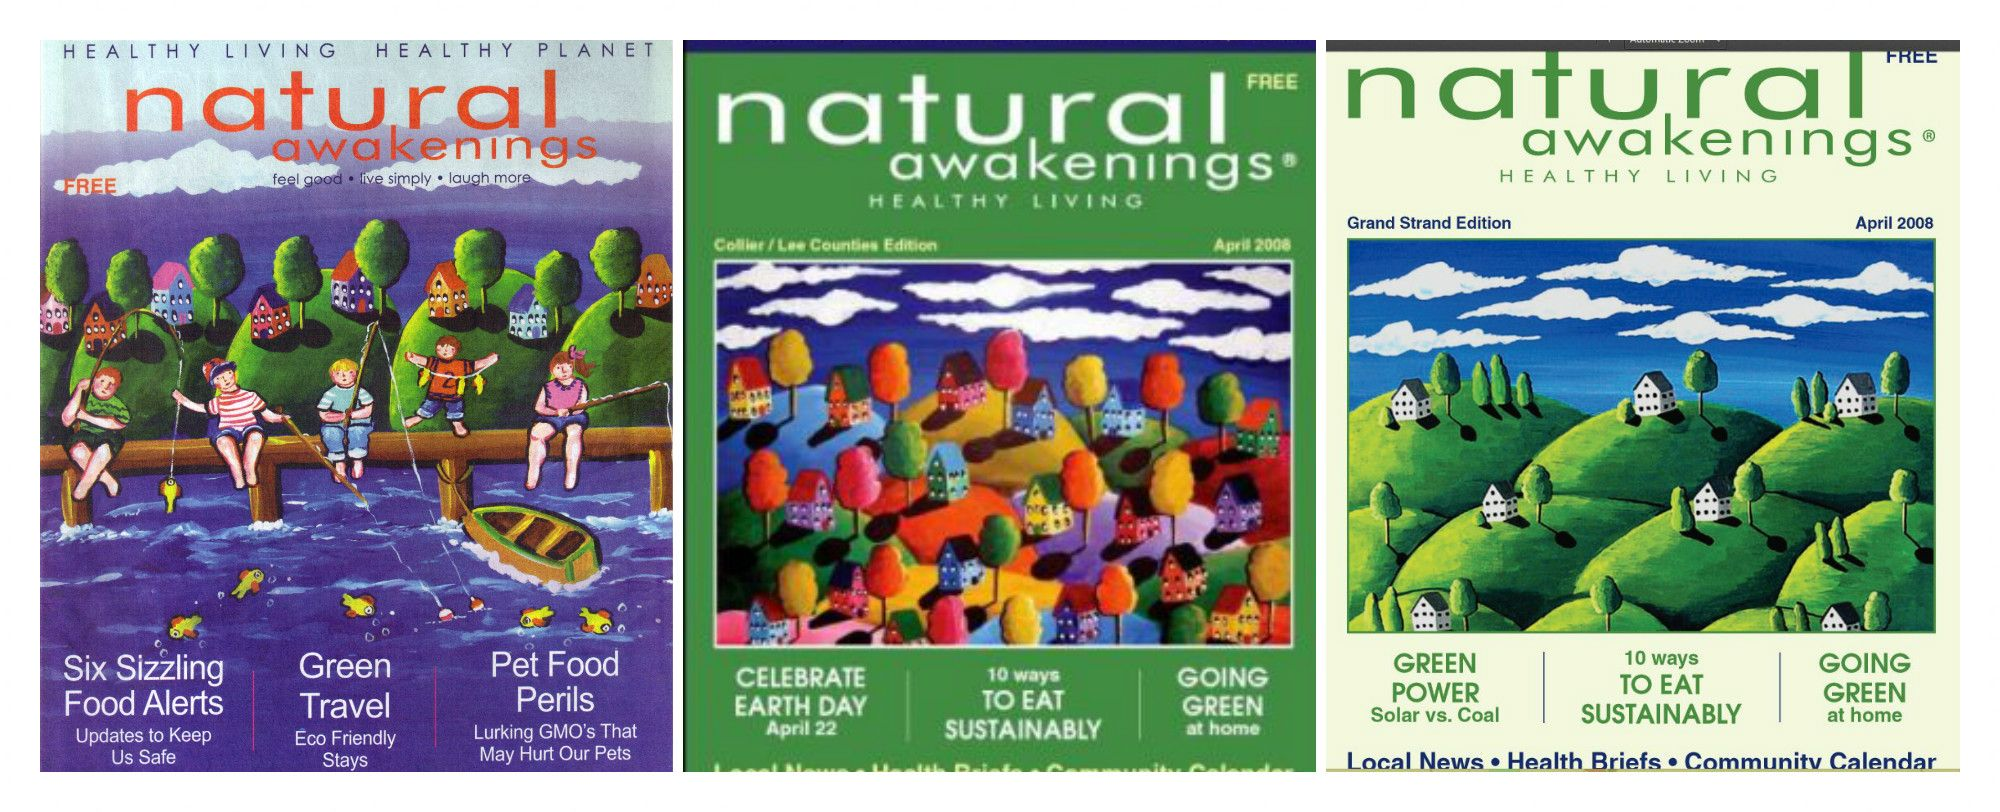 Natural Awakenings Magazine Cover